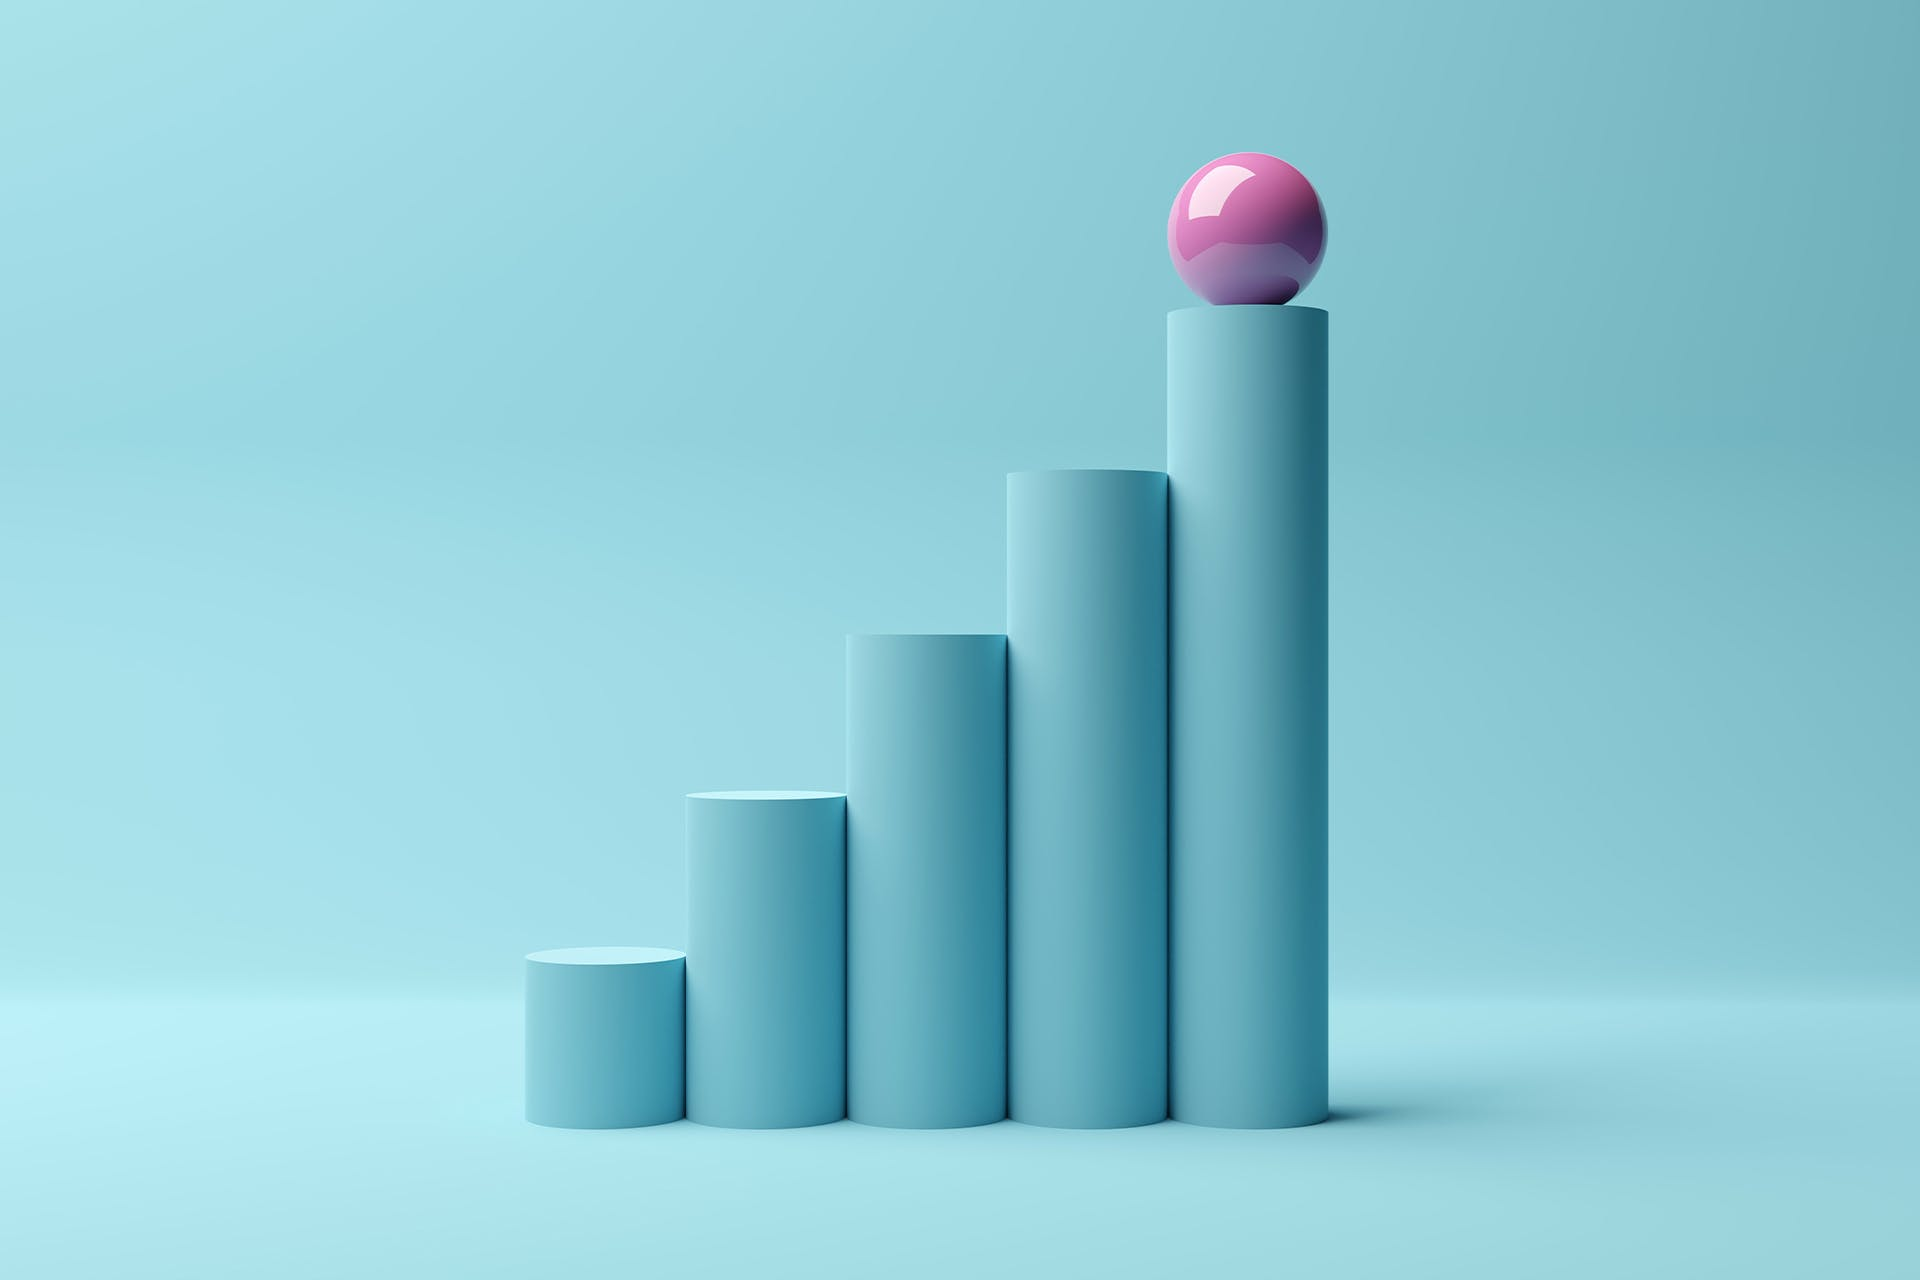 An image from a blog on social media reporting of a series of teal cylinders stacked in ascending order to form a graph. There is a pink sphere atop the tallest teal cylinder.